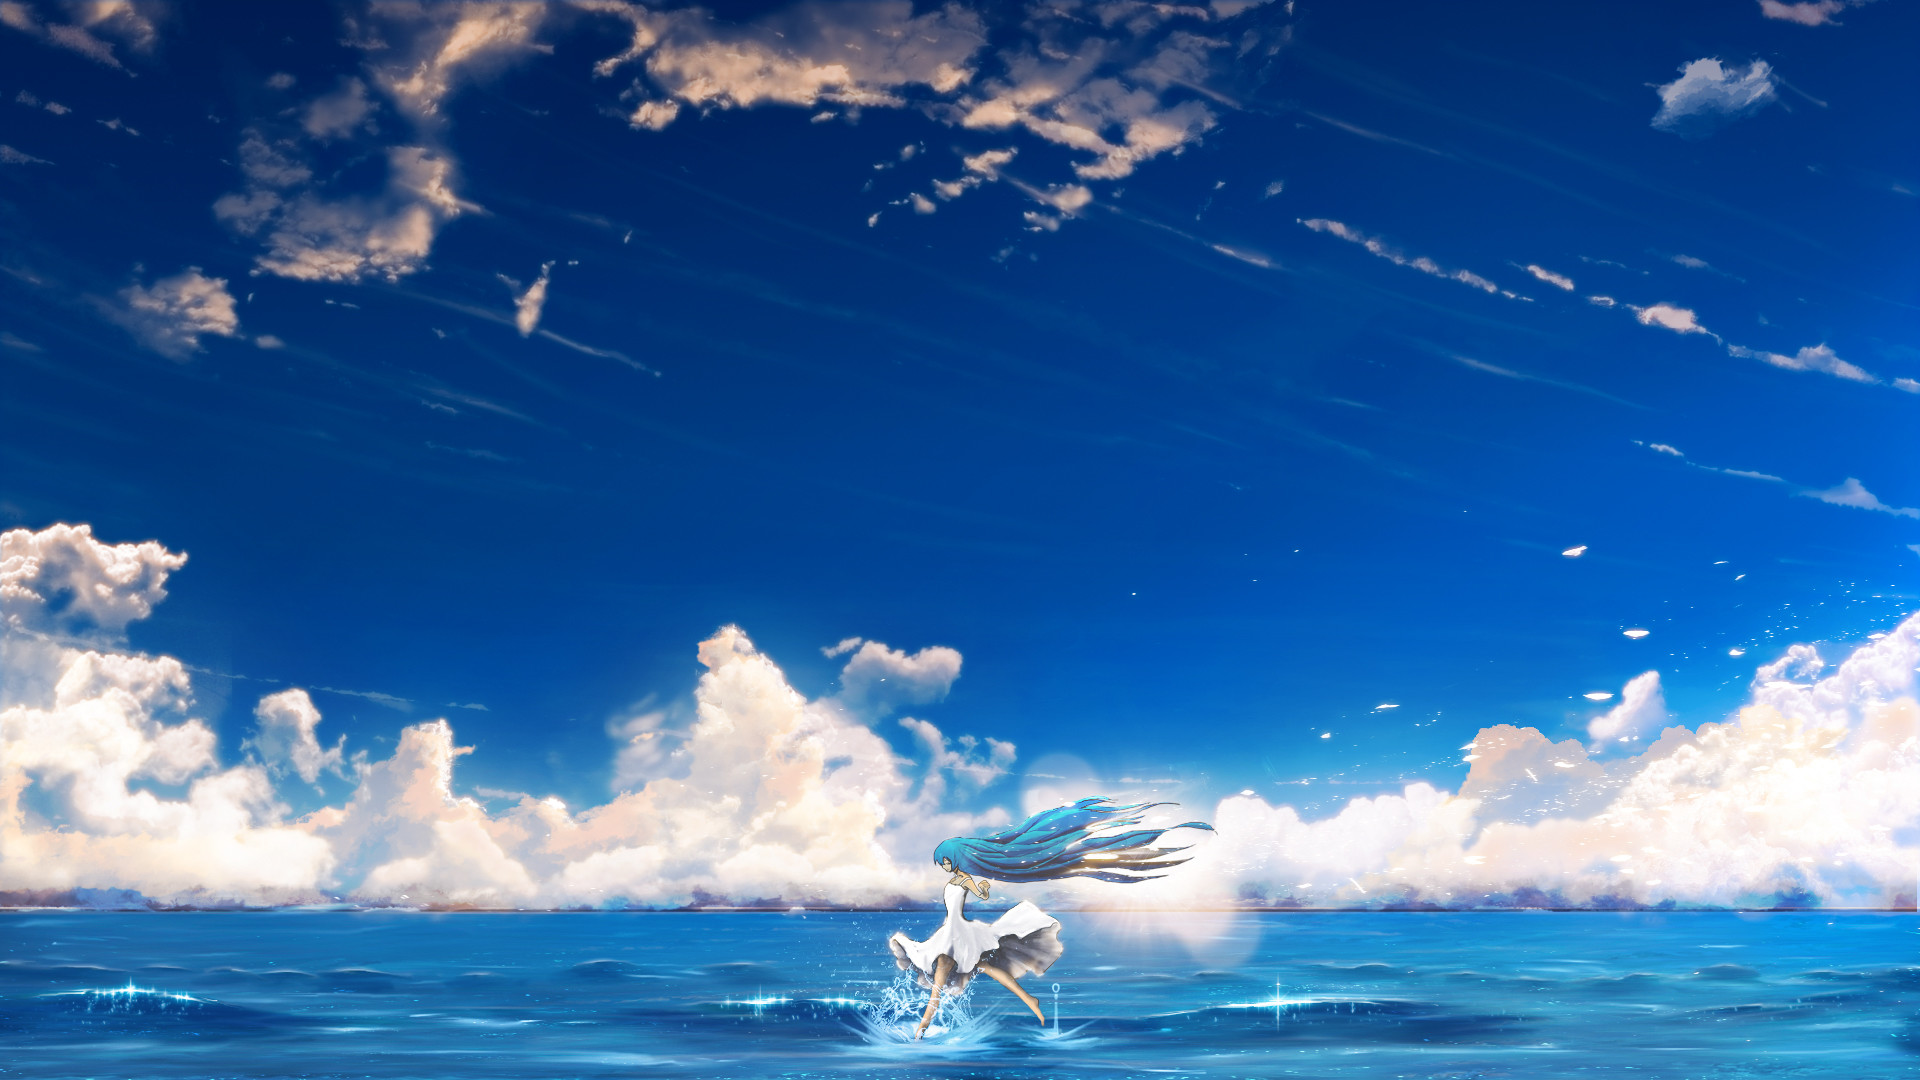 Free Time [Original] [1920×1080] Need #iPhone #6S #Plus #Wallpaper/  #Background for #IPhone6SPlus? Follow iPhone 6S Plus 3Wallpapers/ # Backgrounds …